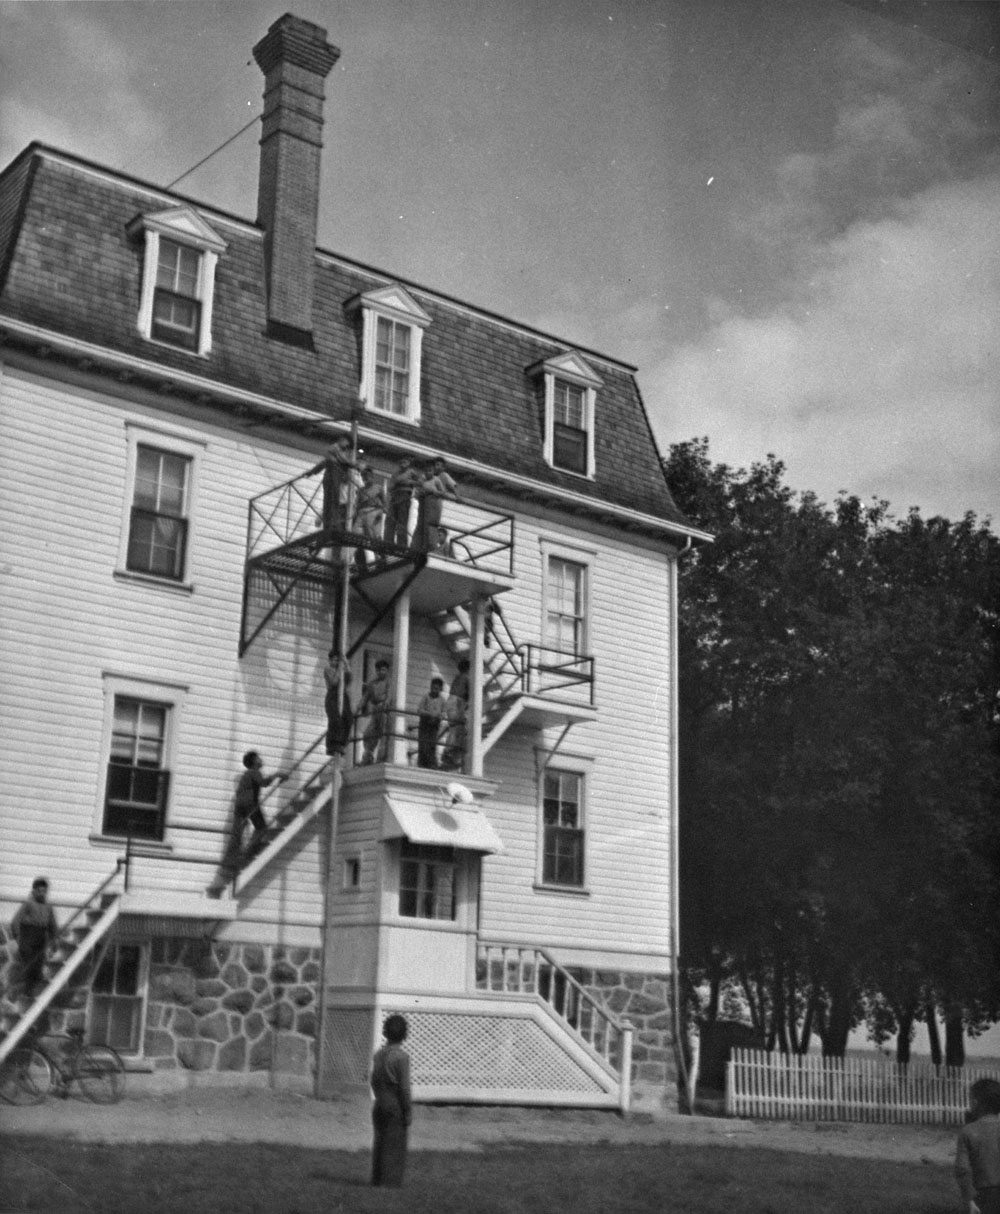 St. Frances Indian Residential School (St. Margaret's Indian Residential School), boys playing on a fire escape of the school, St. Frances, ca. 1958